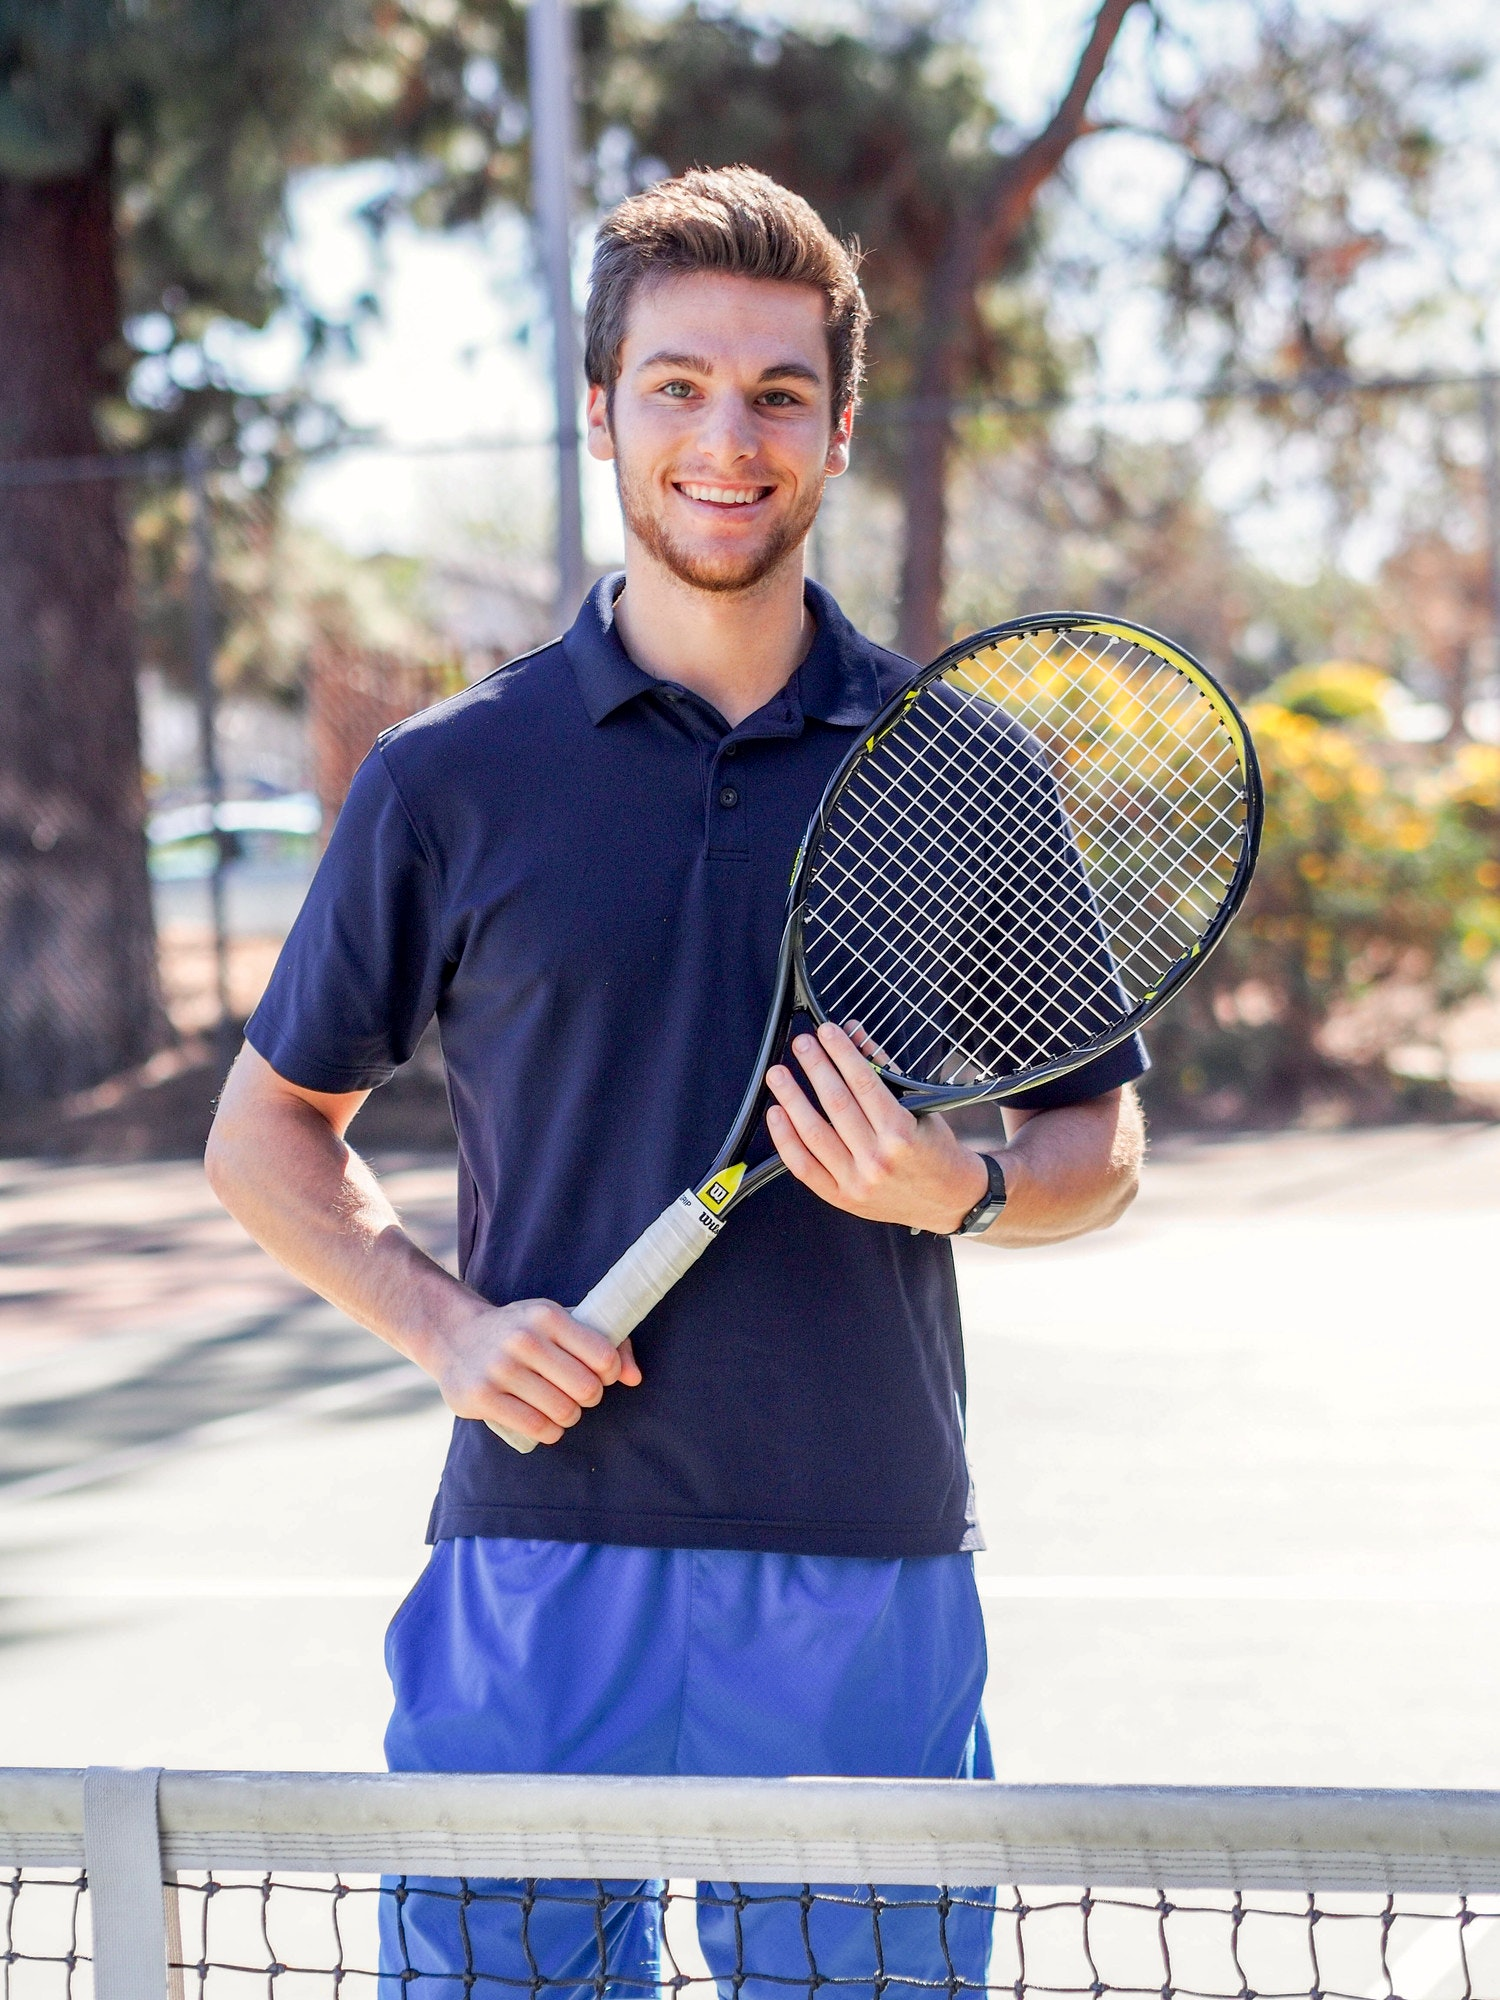 Brandon S. teaches tennis lessons in Granada Hills , CA